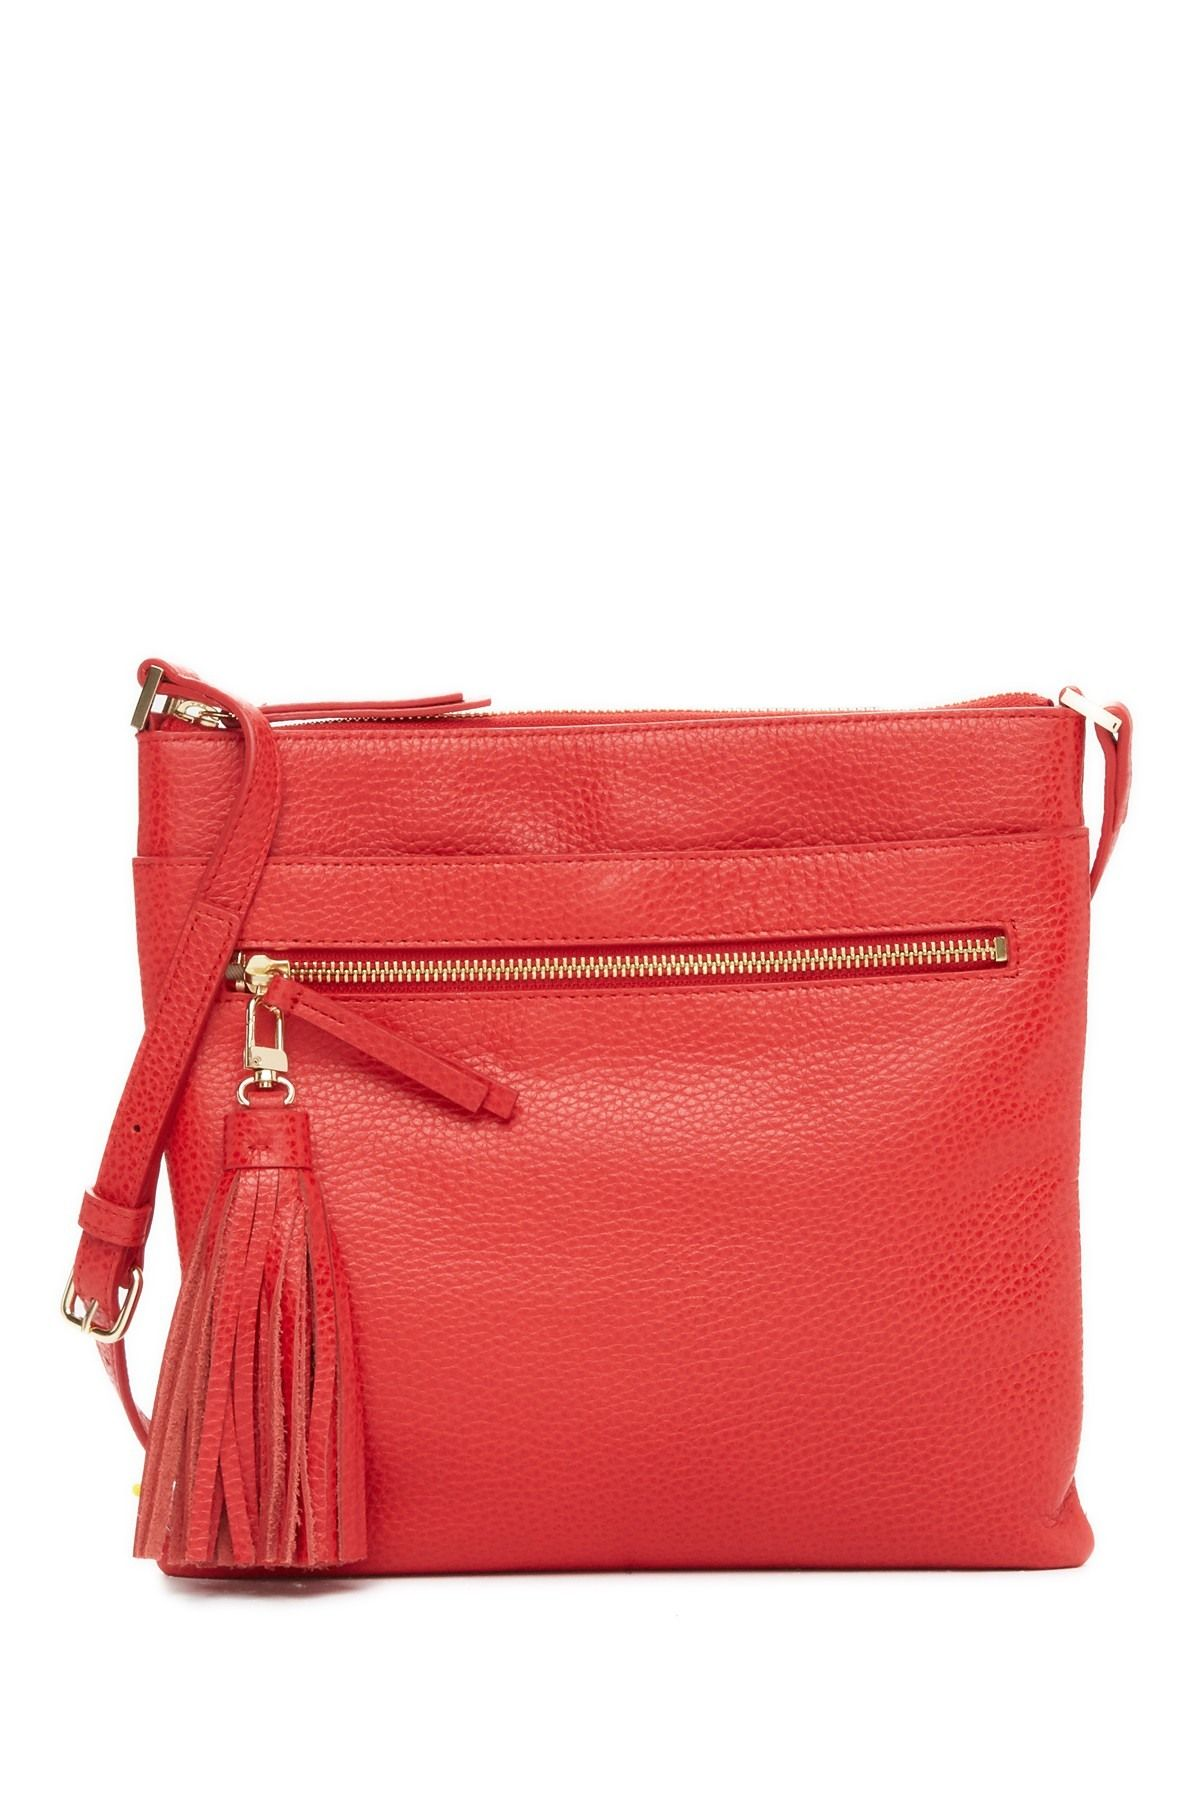 571796dc4b Image of Halogen Tasseled Leather Crossbody Bag Leather Crossbody Bag